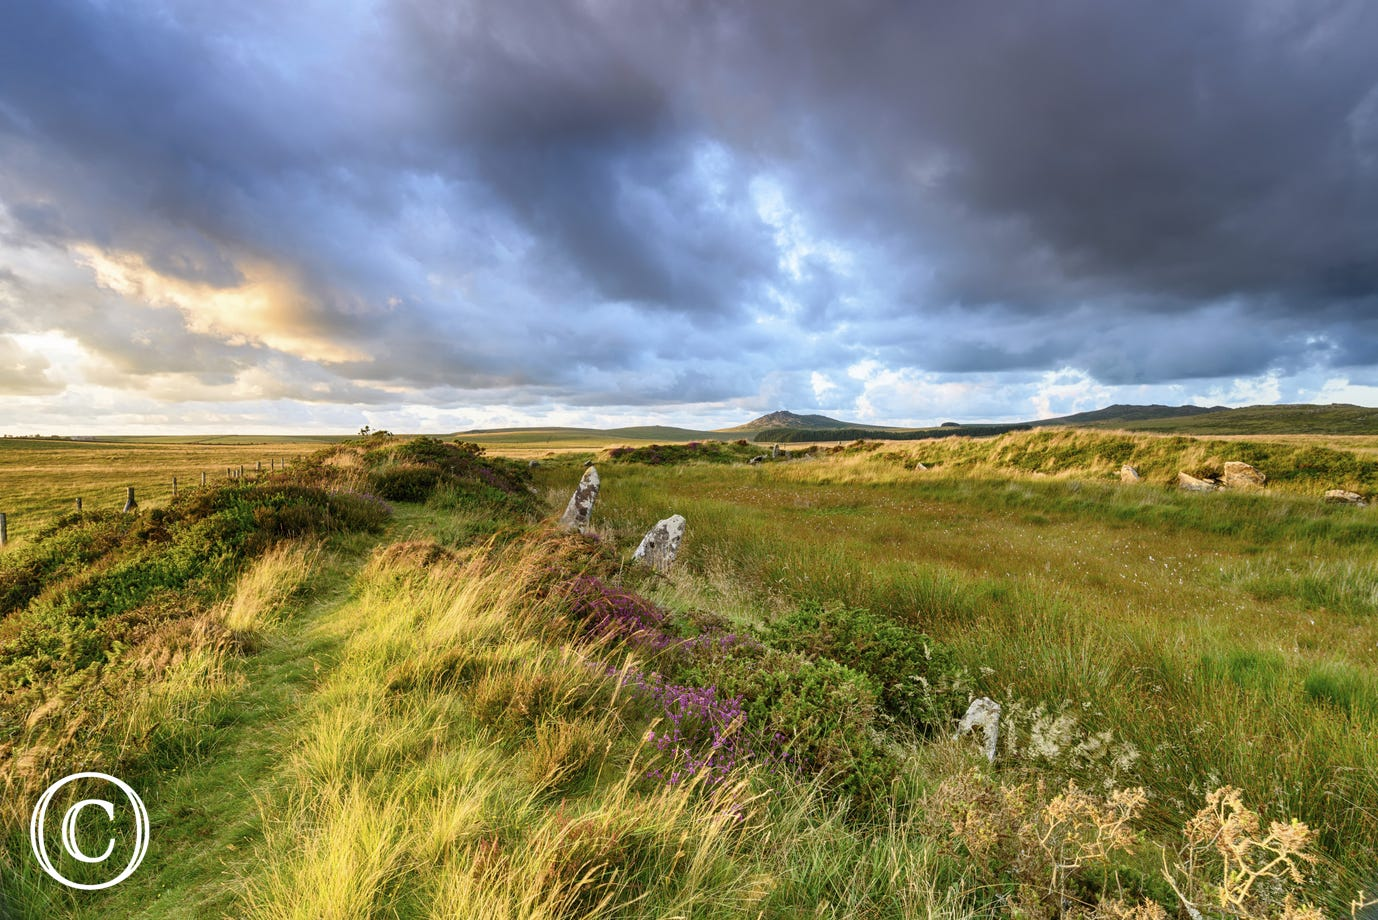 Only 5 miles to the dramatic landscape of Bodmin Moor - a walker's paradise